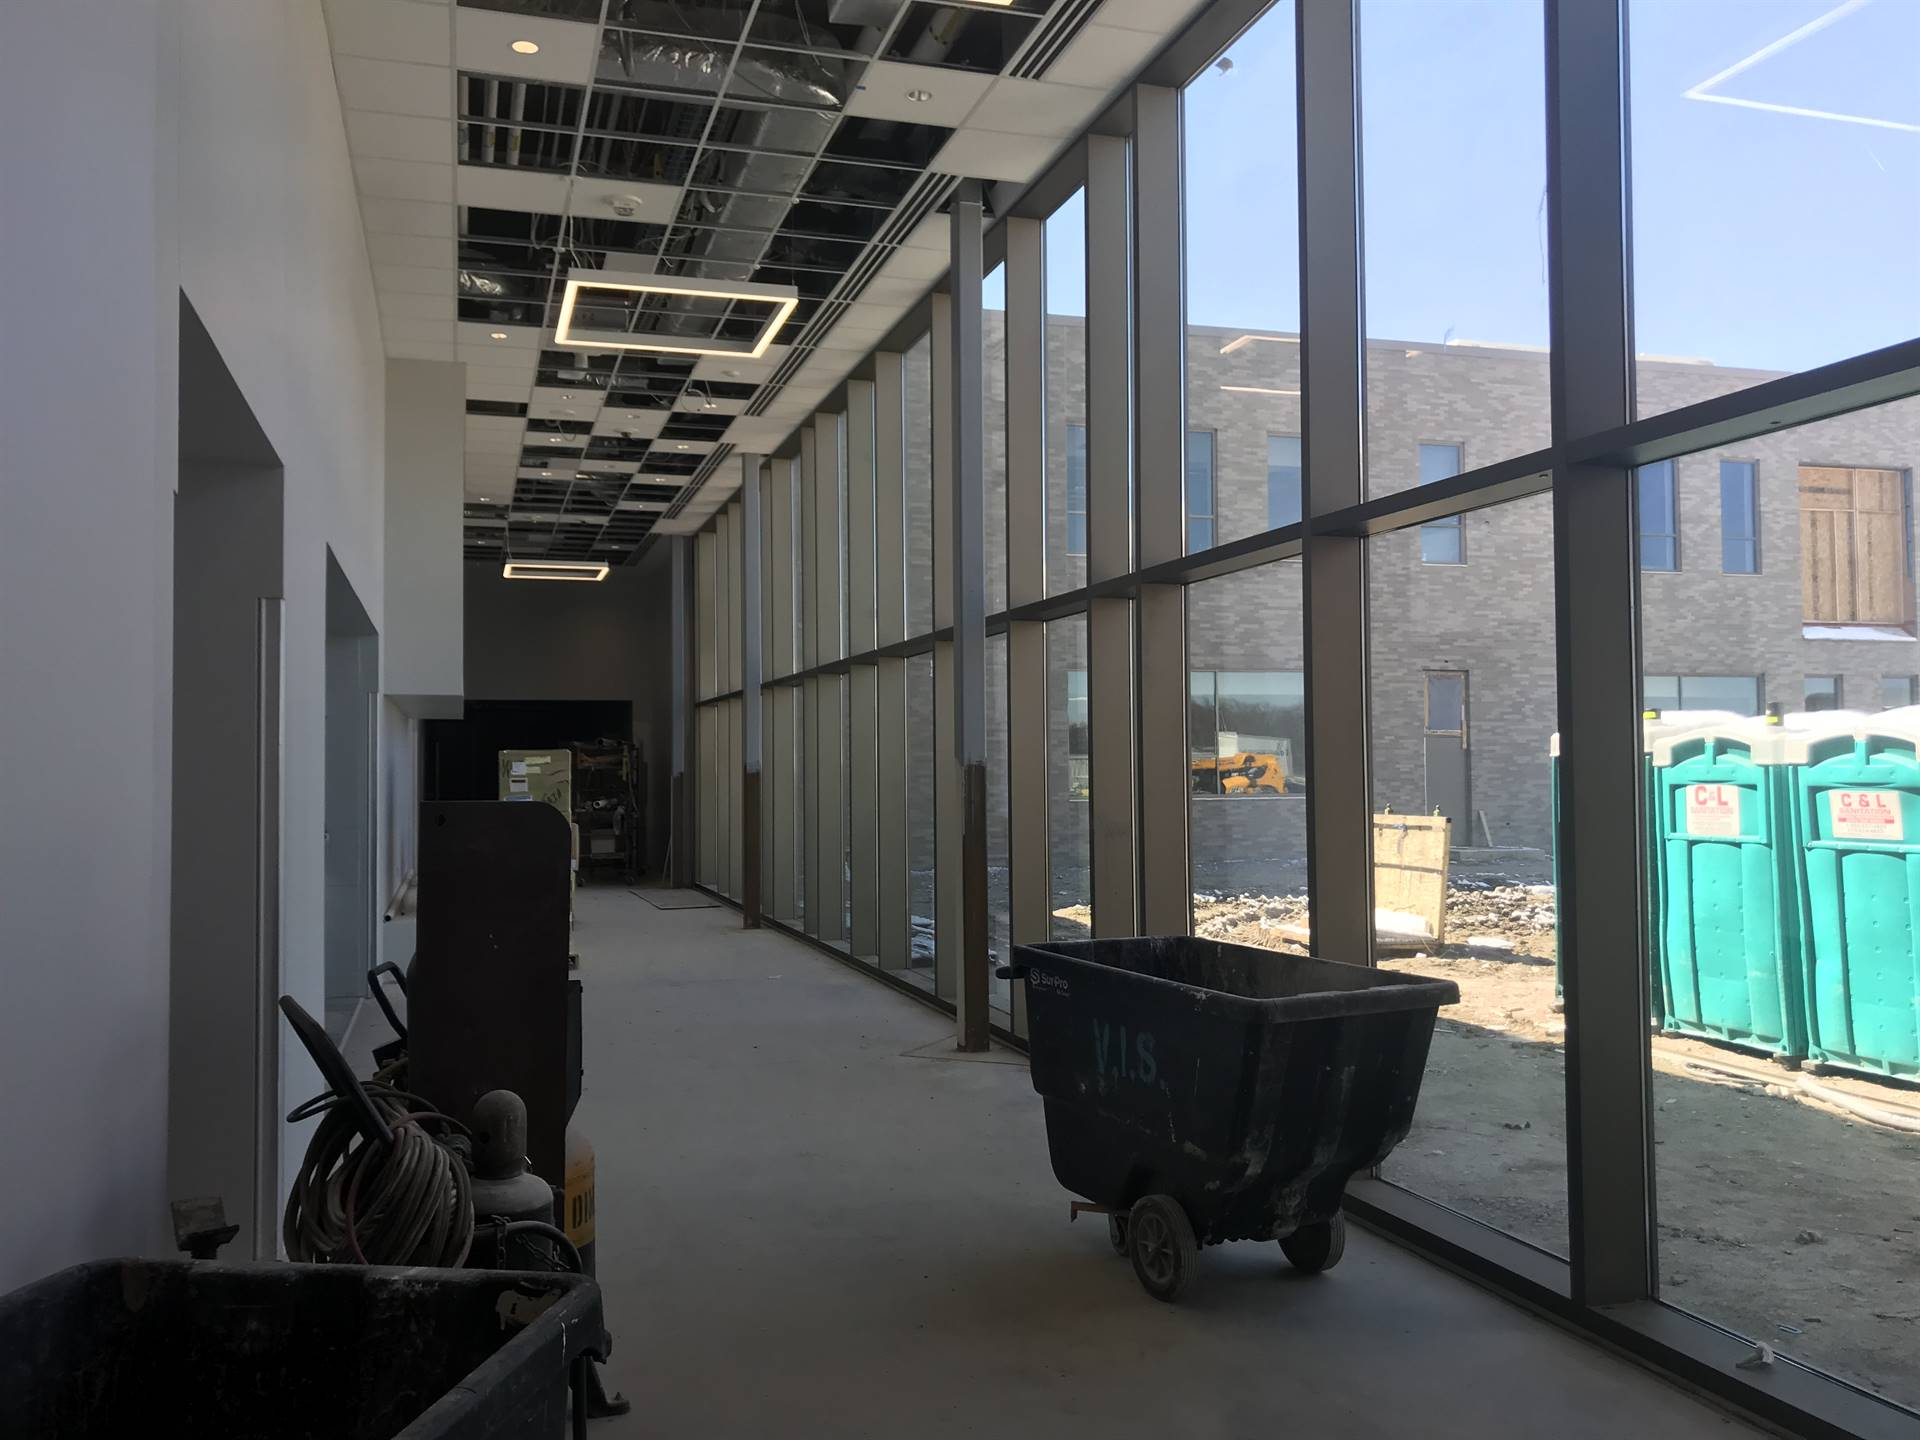 Hallway connecting Rossford Elementary School academic wings with the gym and cafeteria.